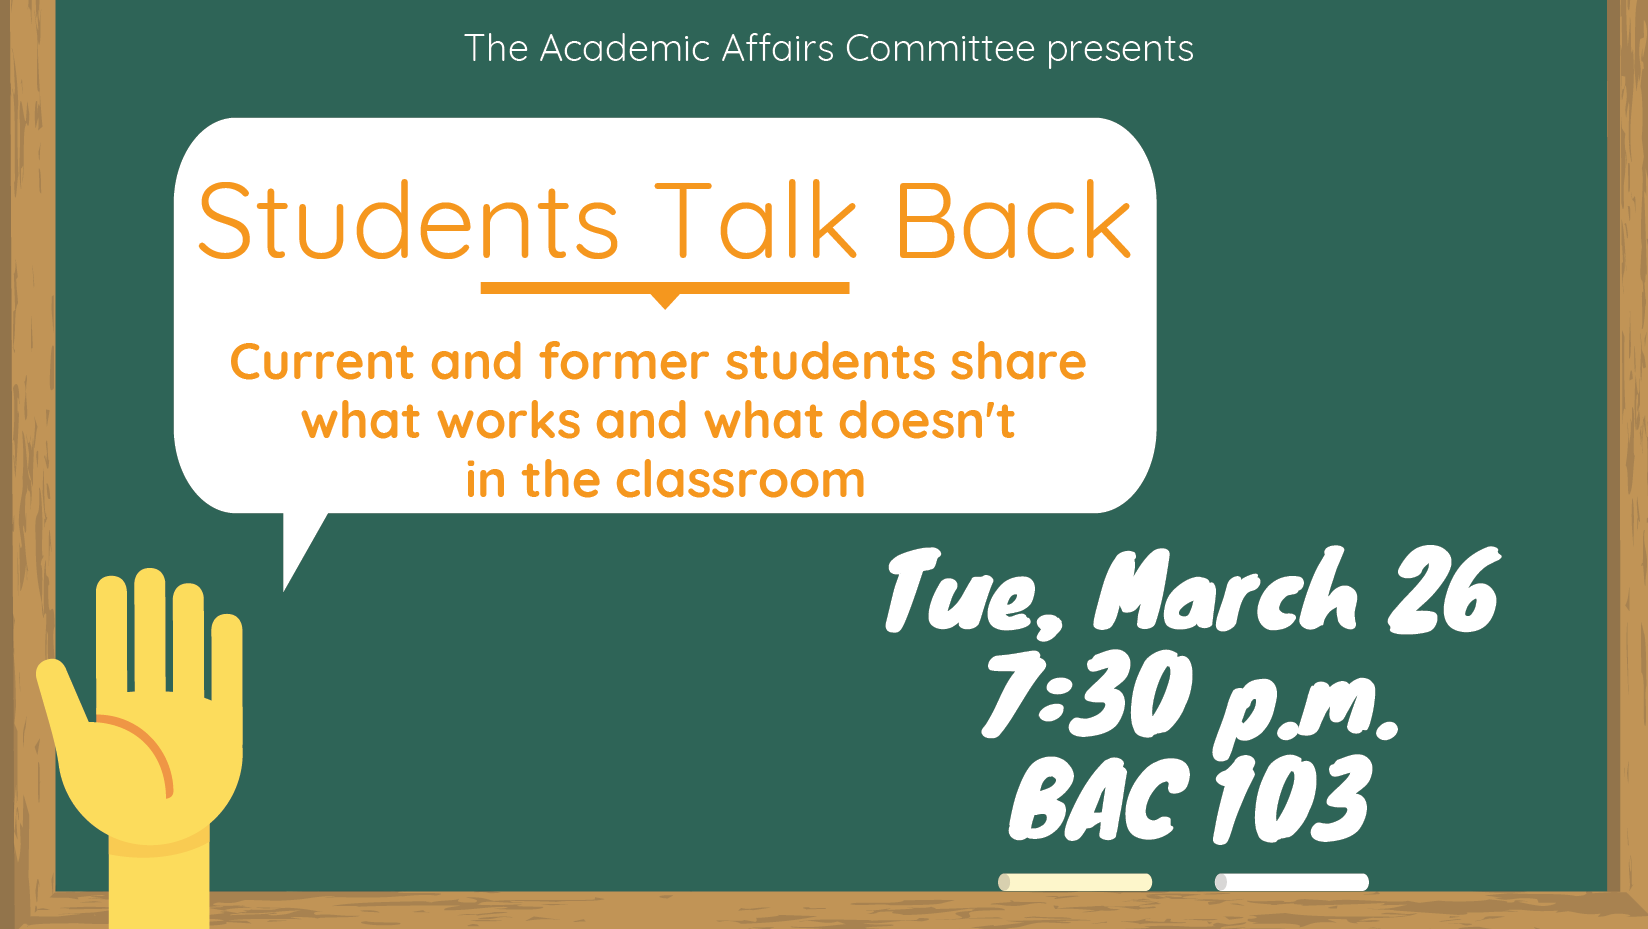 Discussion: Students Talk Back